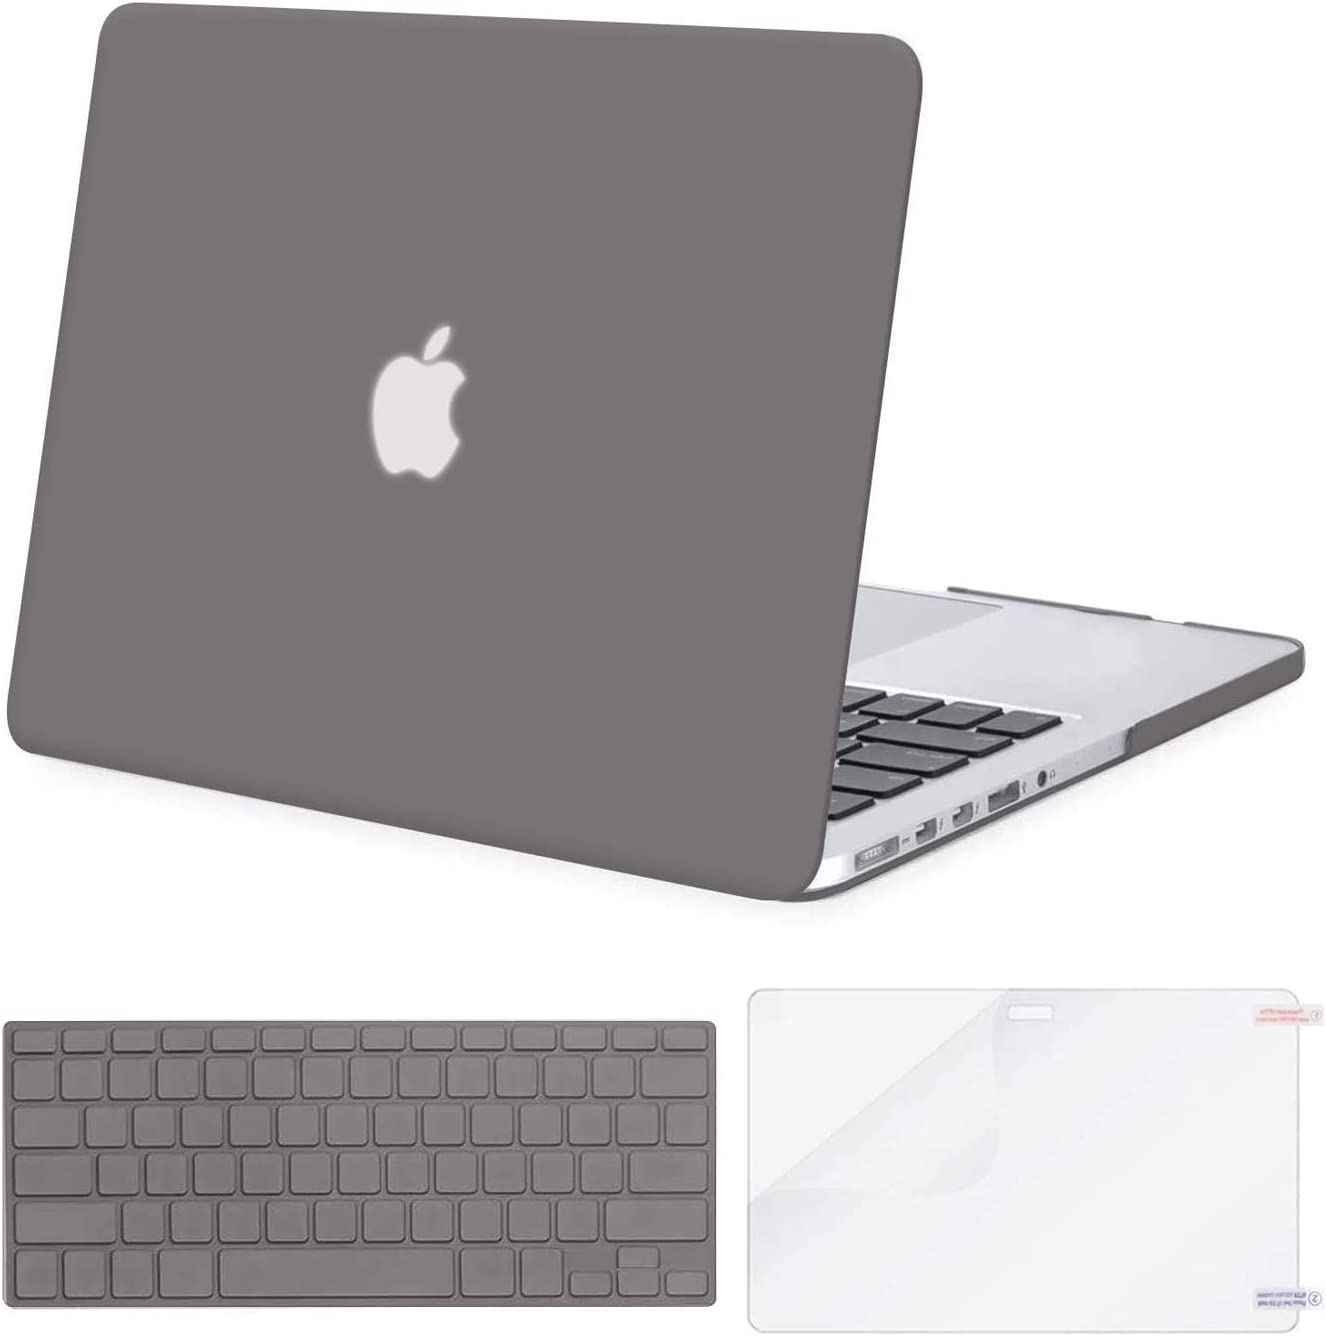 MOSISO Case Only Compatible with Older Version MacBook Pro Retina 13 inch (Models: A1502 & A1425) (Release 2015 - end 2012), Plastic Hard Shell Case & Keyboard Cover & Screen Protector, Gray